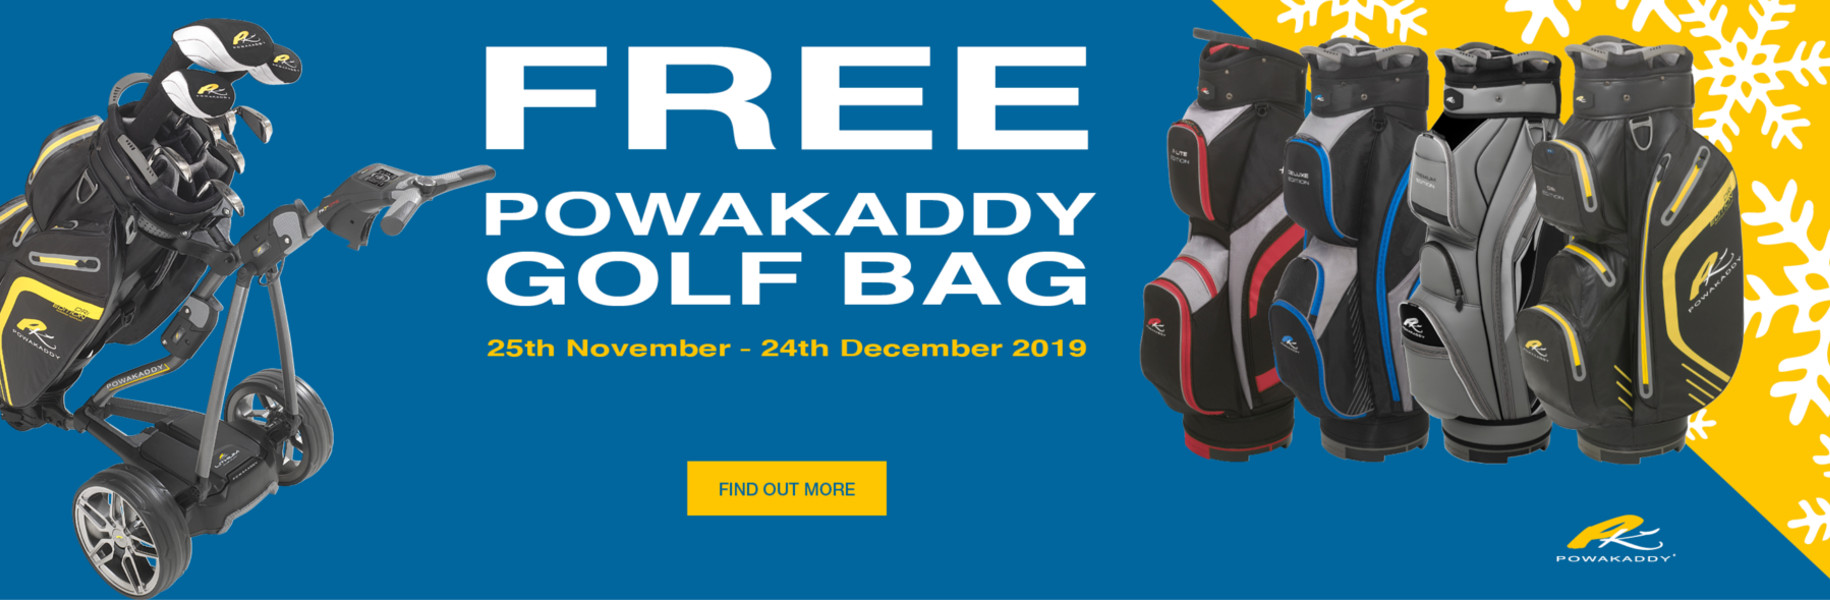 Free Powakaddy Golf Bag for Christmas